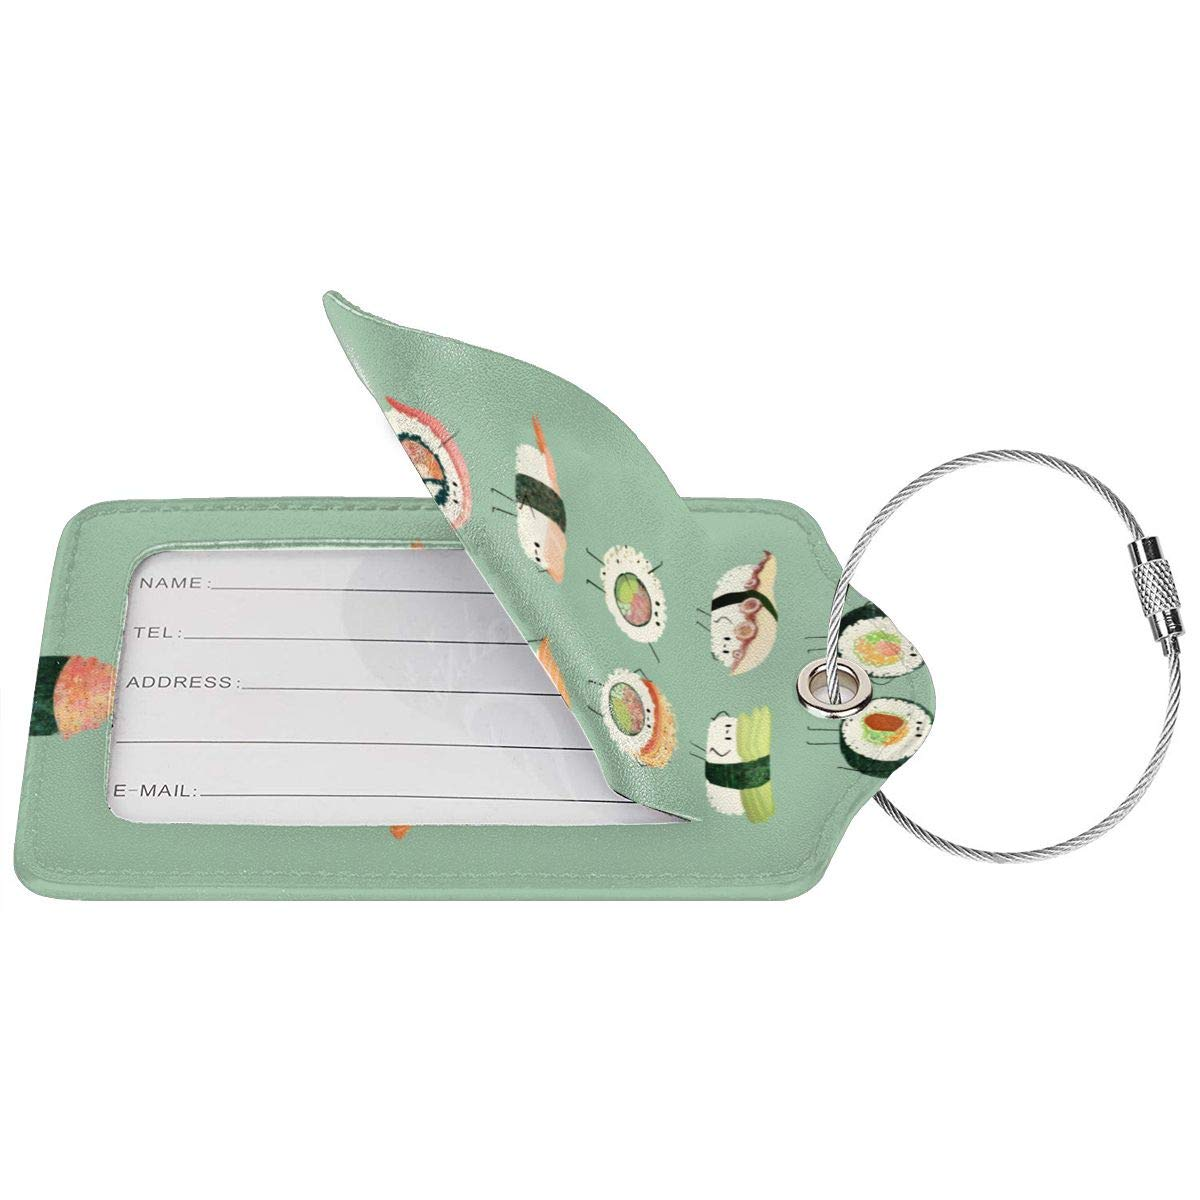 Delicious Sushi Travel Luggage Tags With Full Privacy Cover Leather Case And Stainless Steel Loop